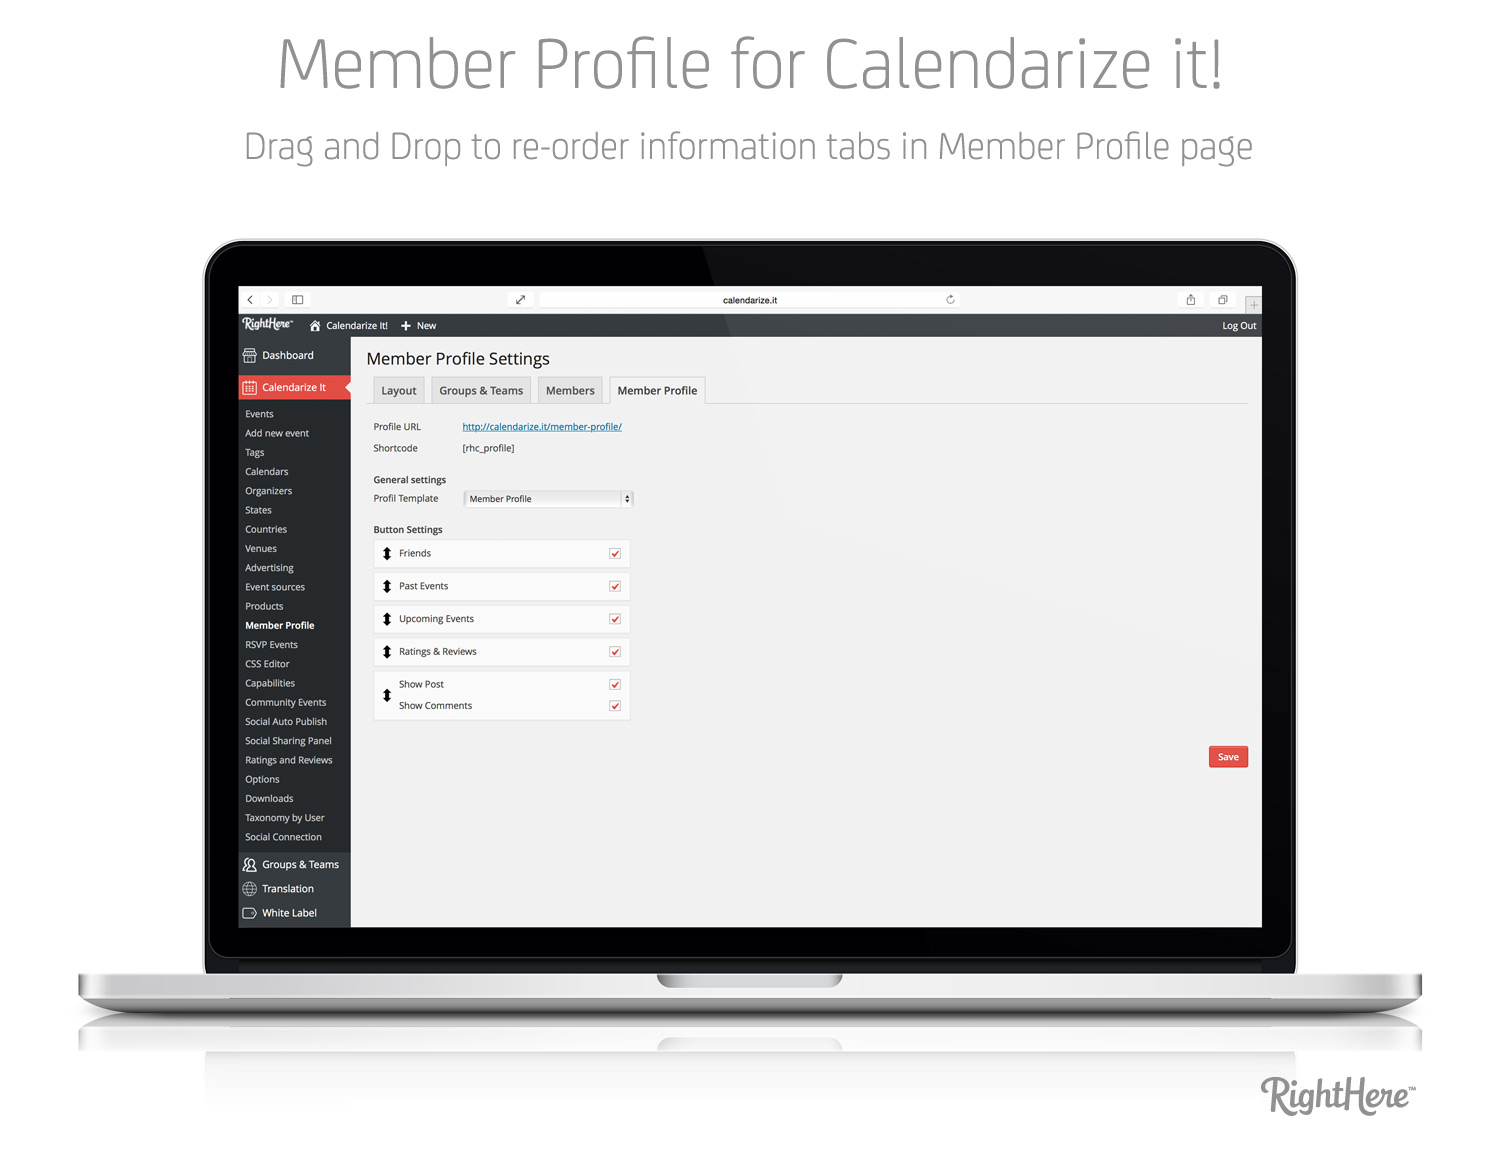 Member Profile for Calendarize it! - Drag and drop to reorder information tabs in Member Profile page